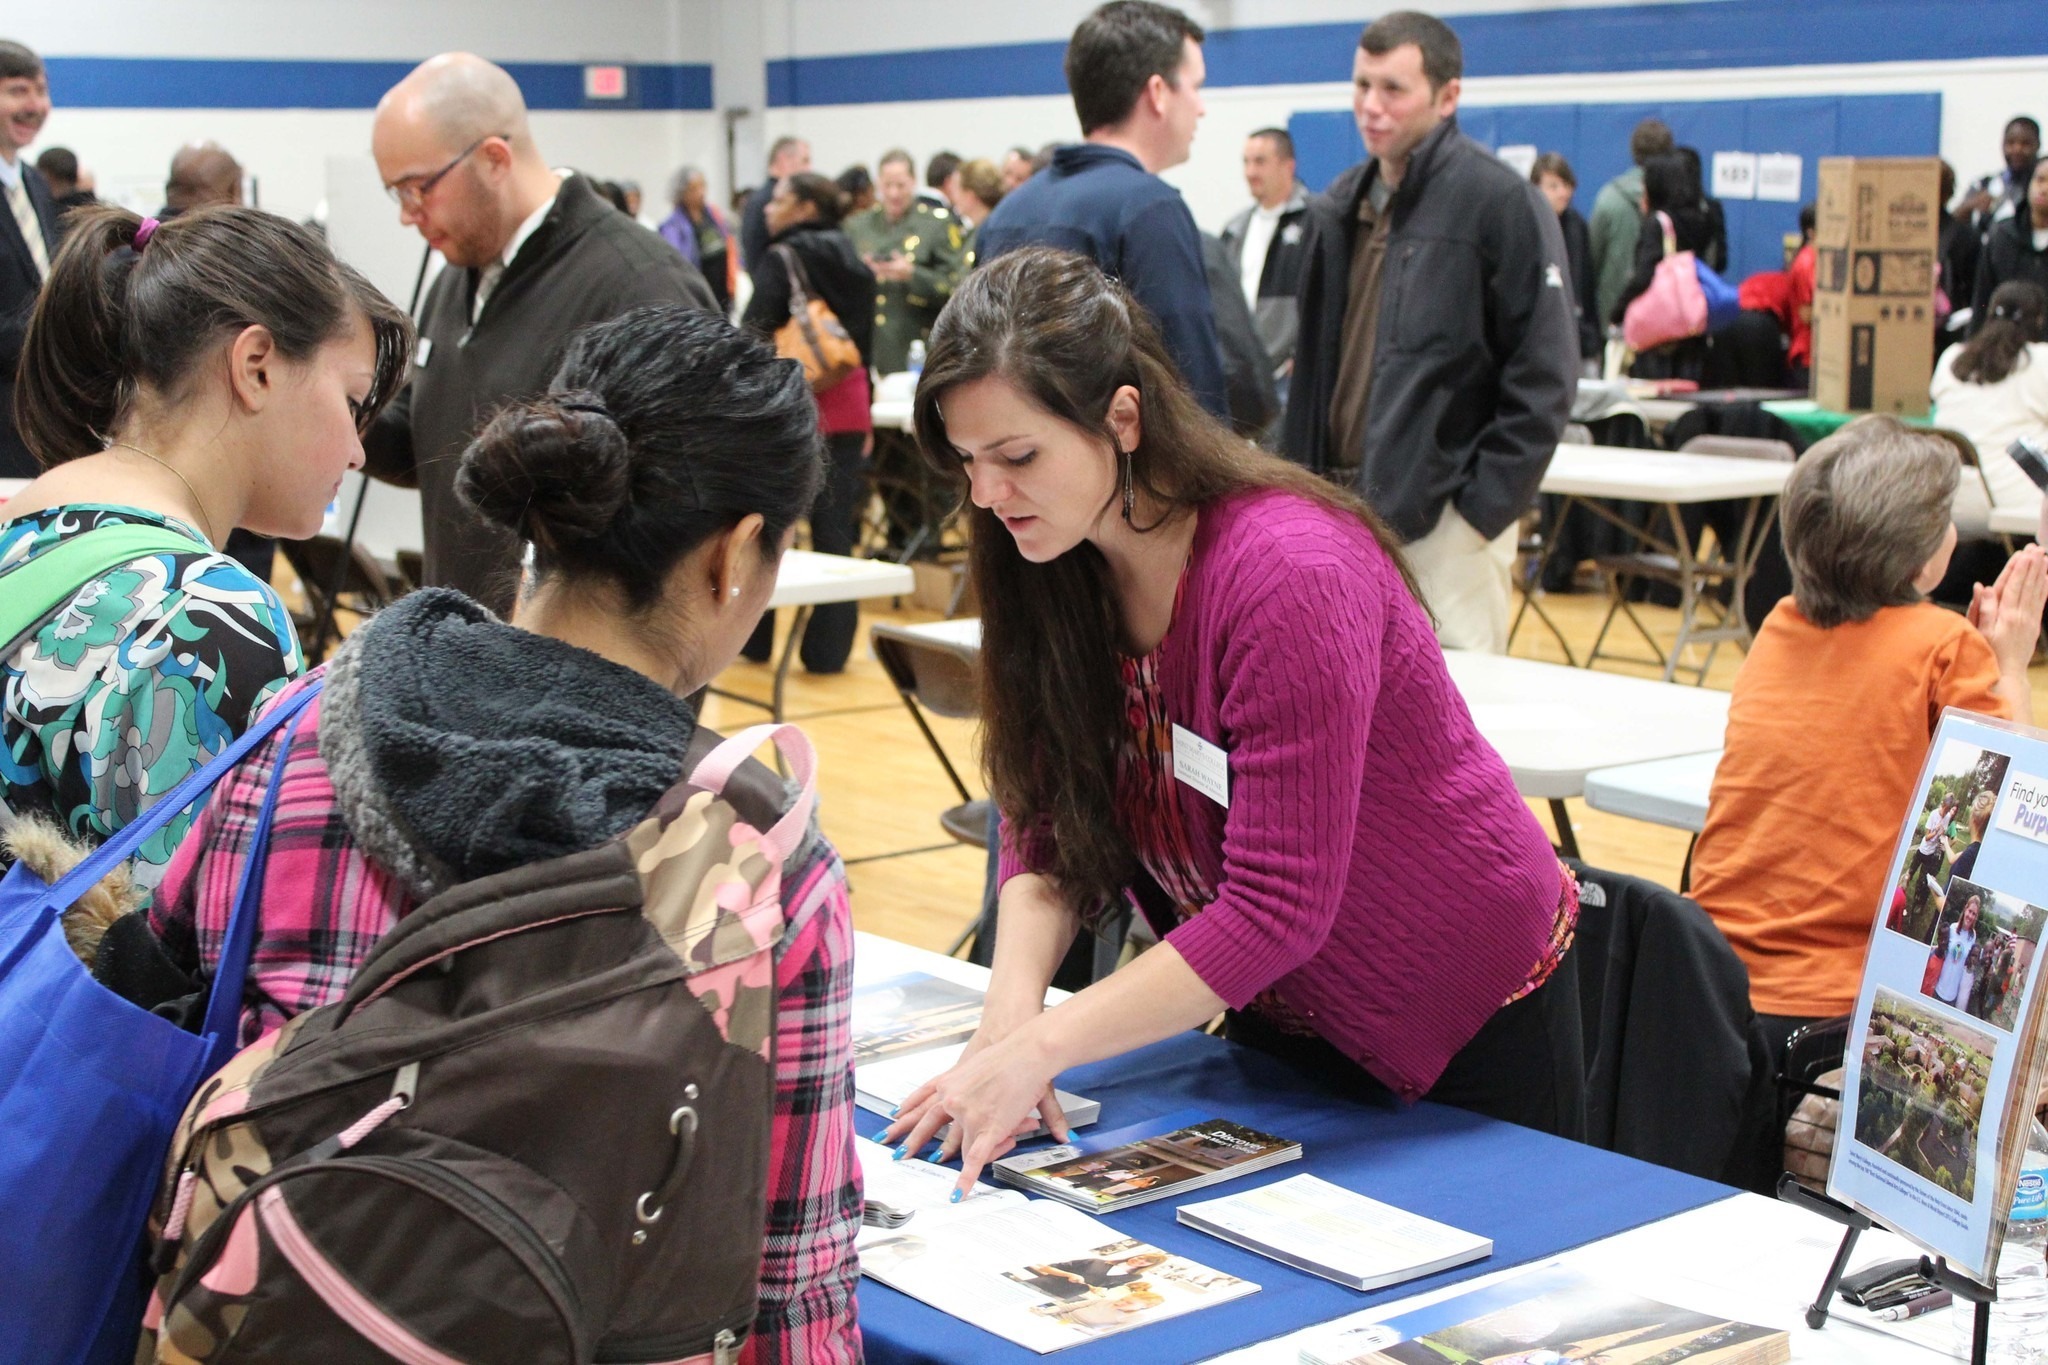 college and career fair at district 218 administrative center college and career fair at district 218 administrative center today chicago tribune